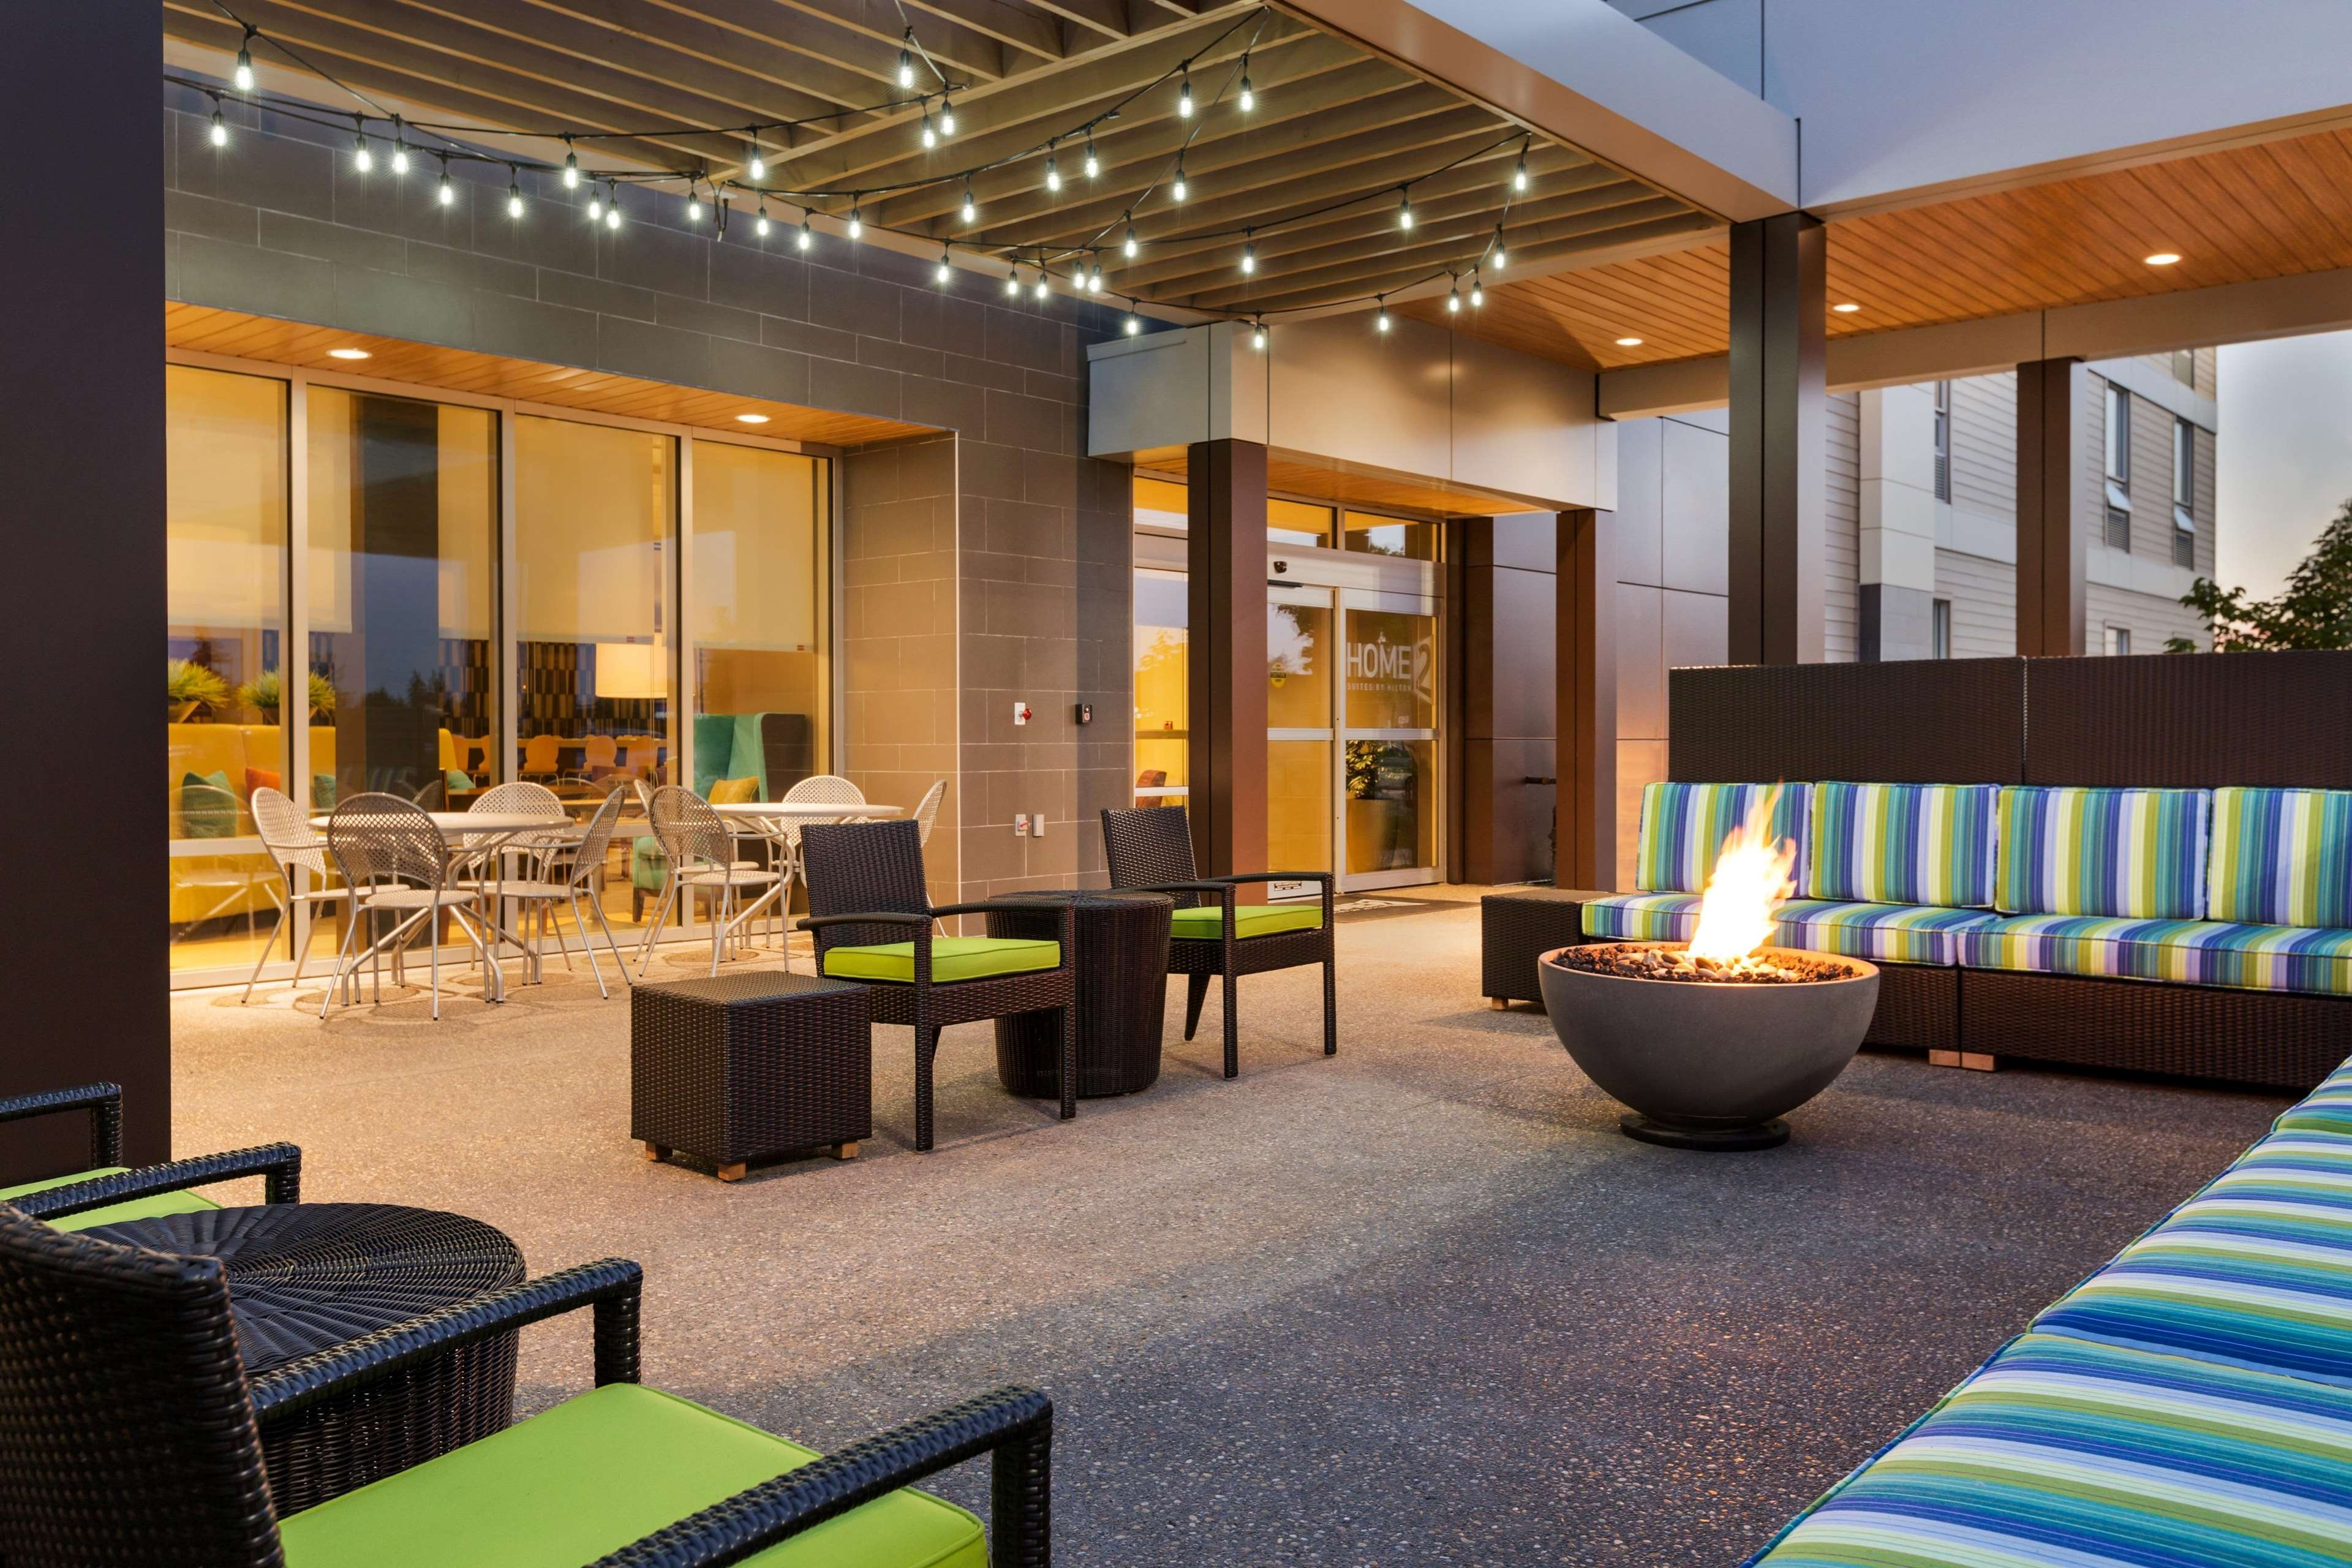 Home2 Suites by Hilton West Edmonton, Alberta, Canada in Edmonton: Outdoor Area with Firepit